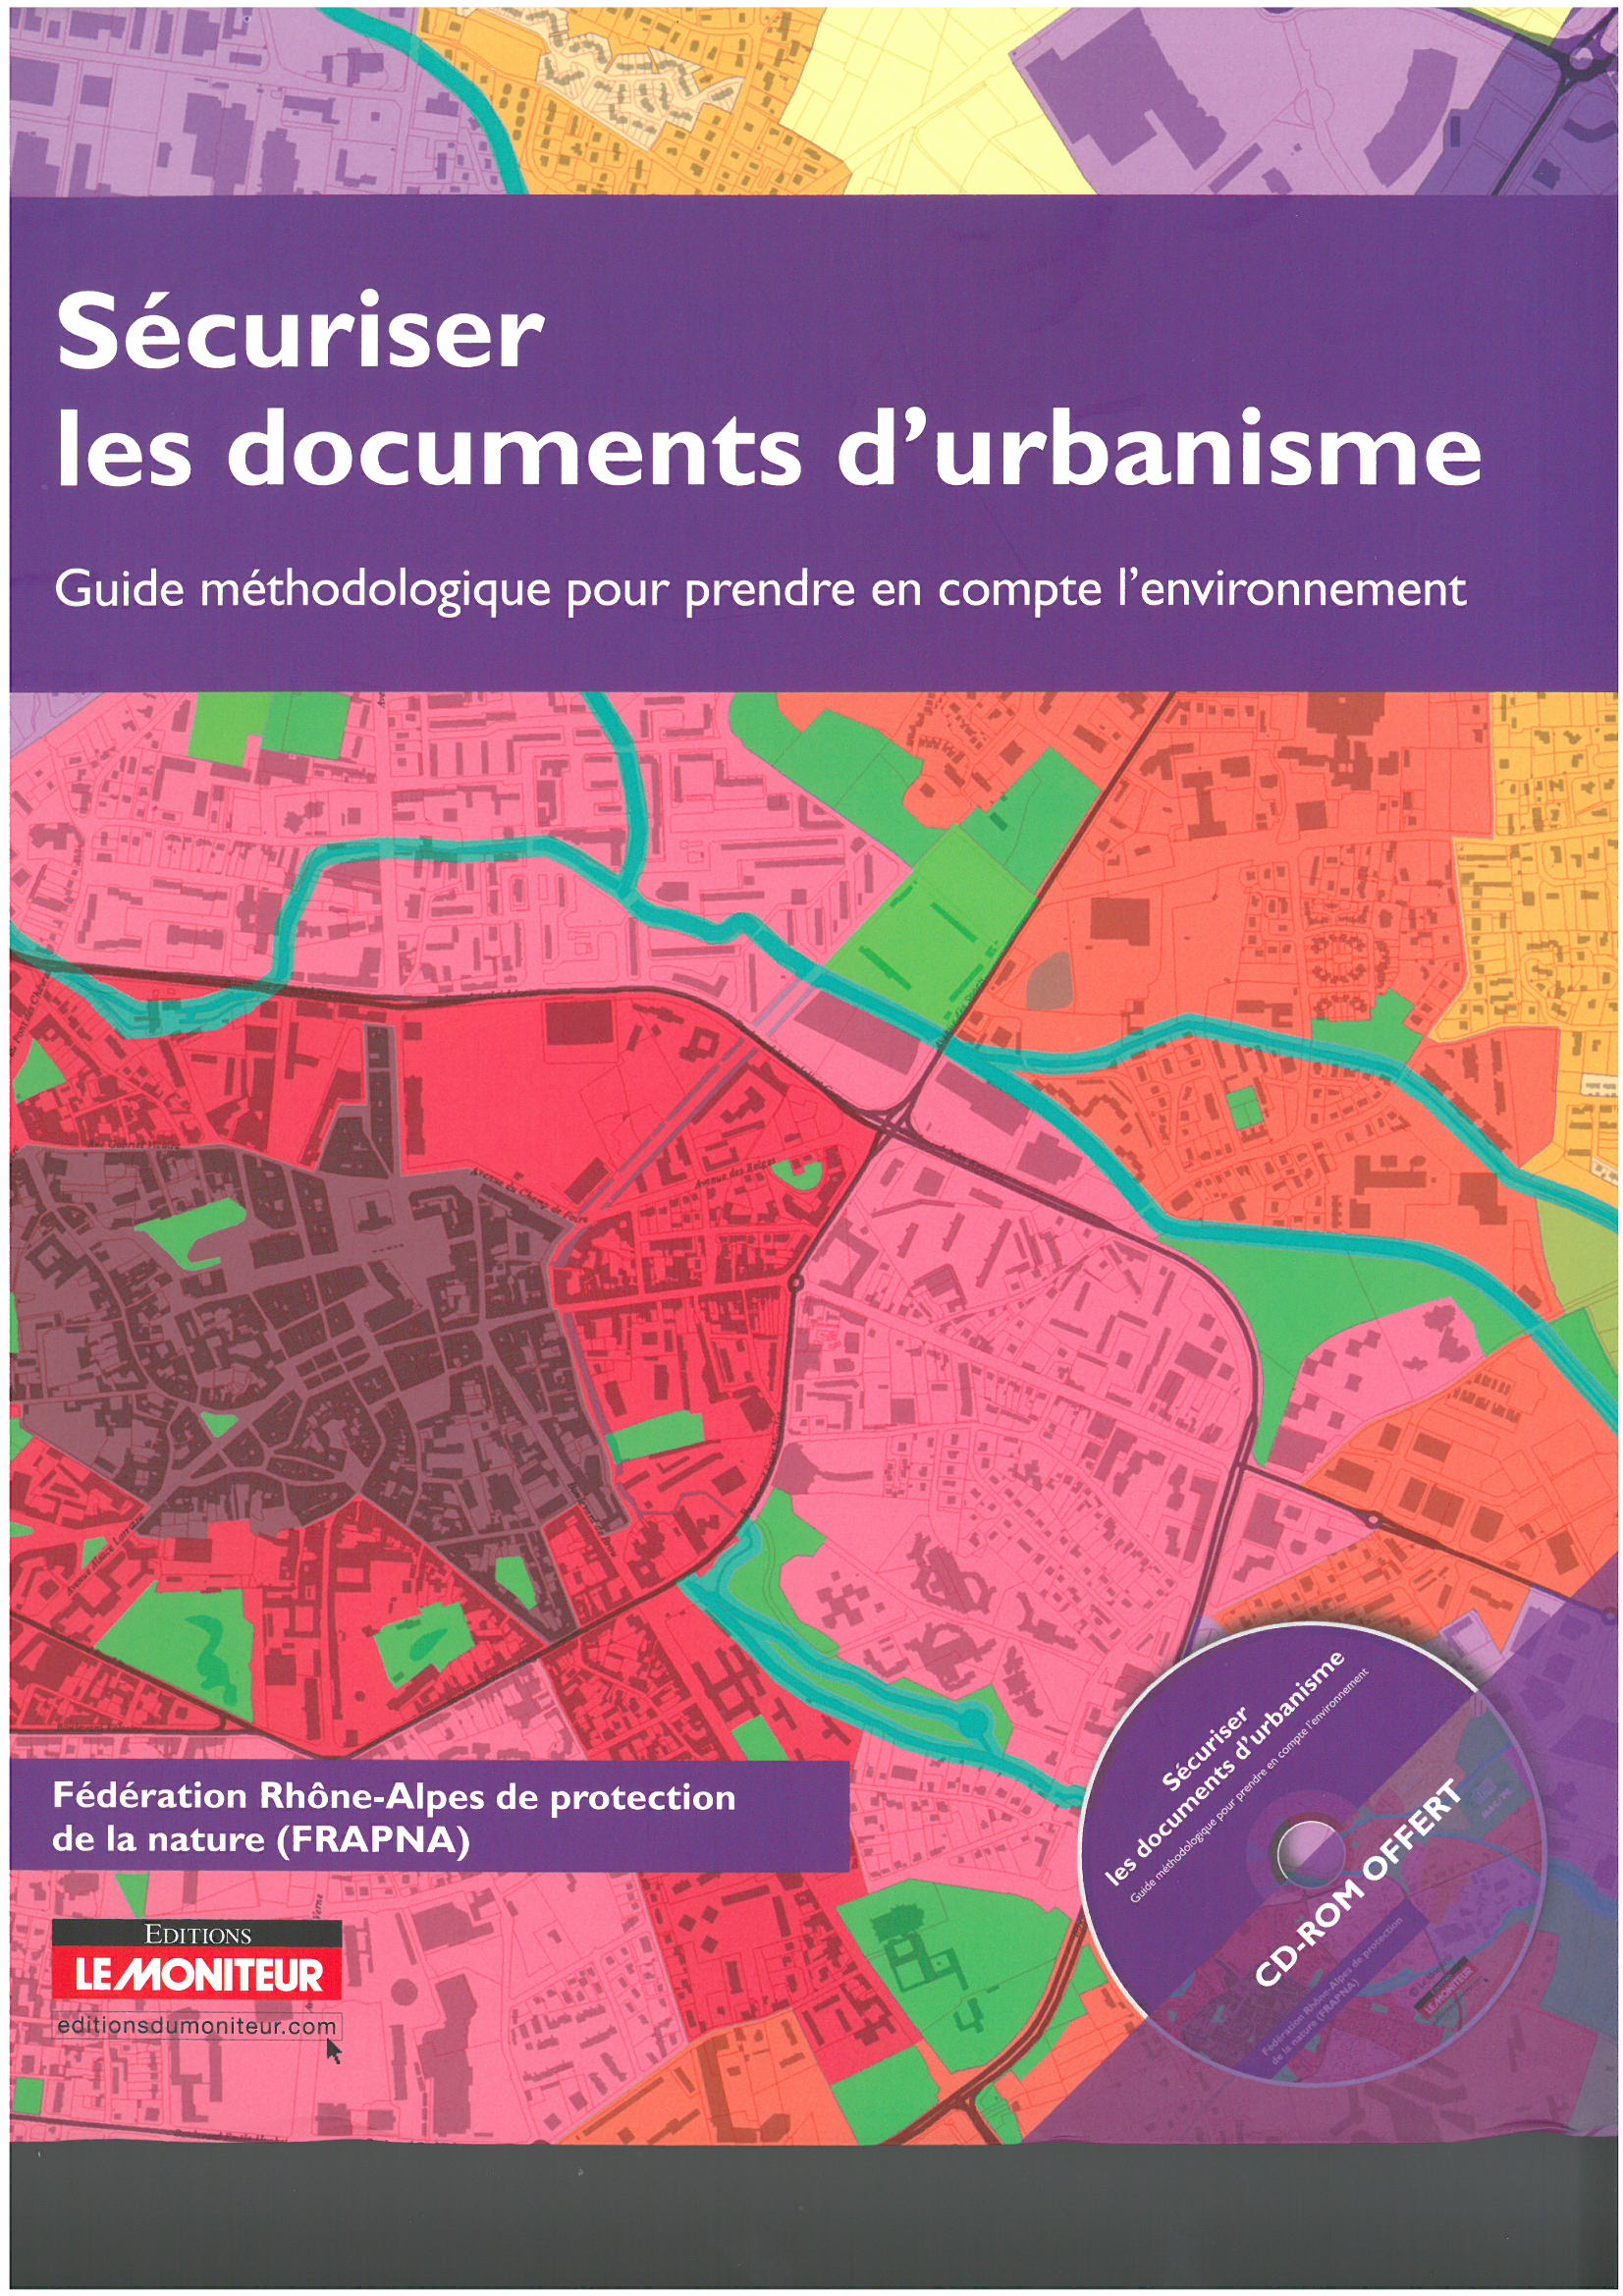 Couverture_Securiser_Documents_Urbanisme